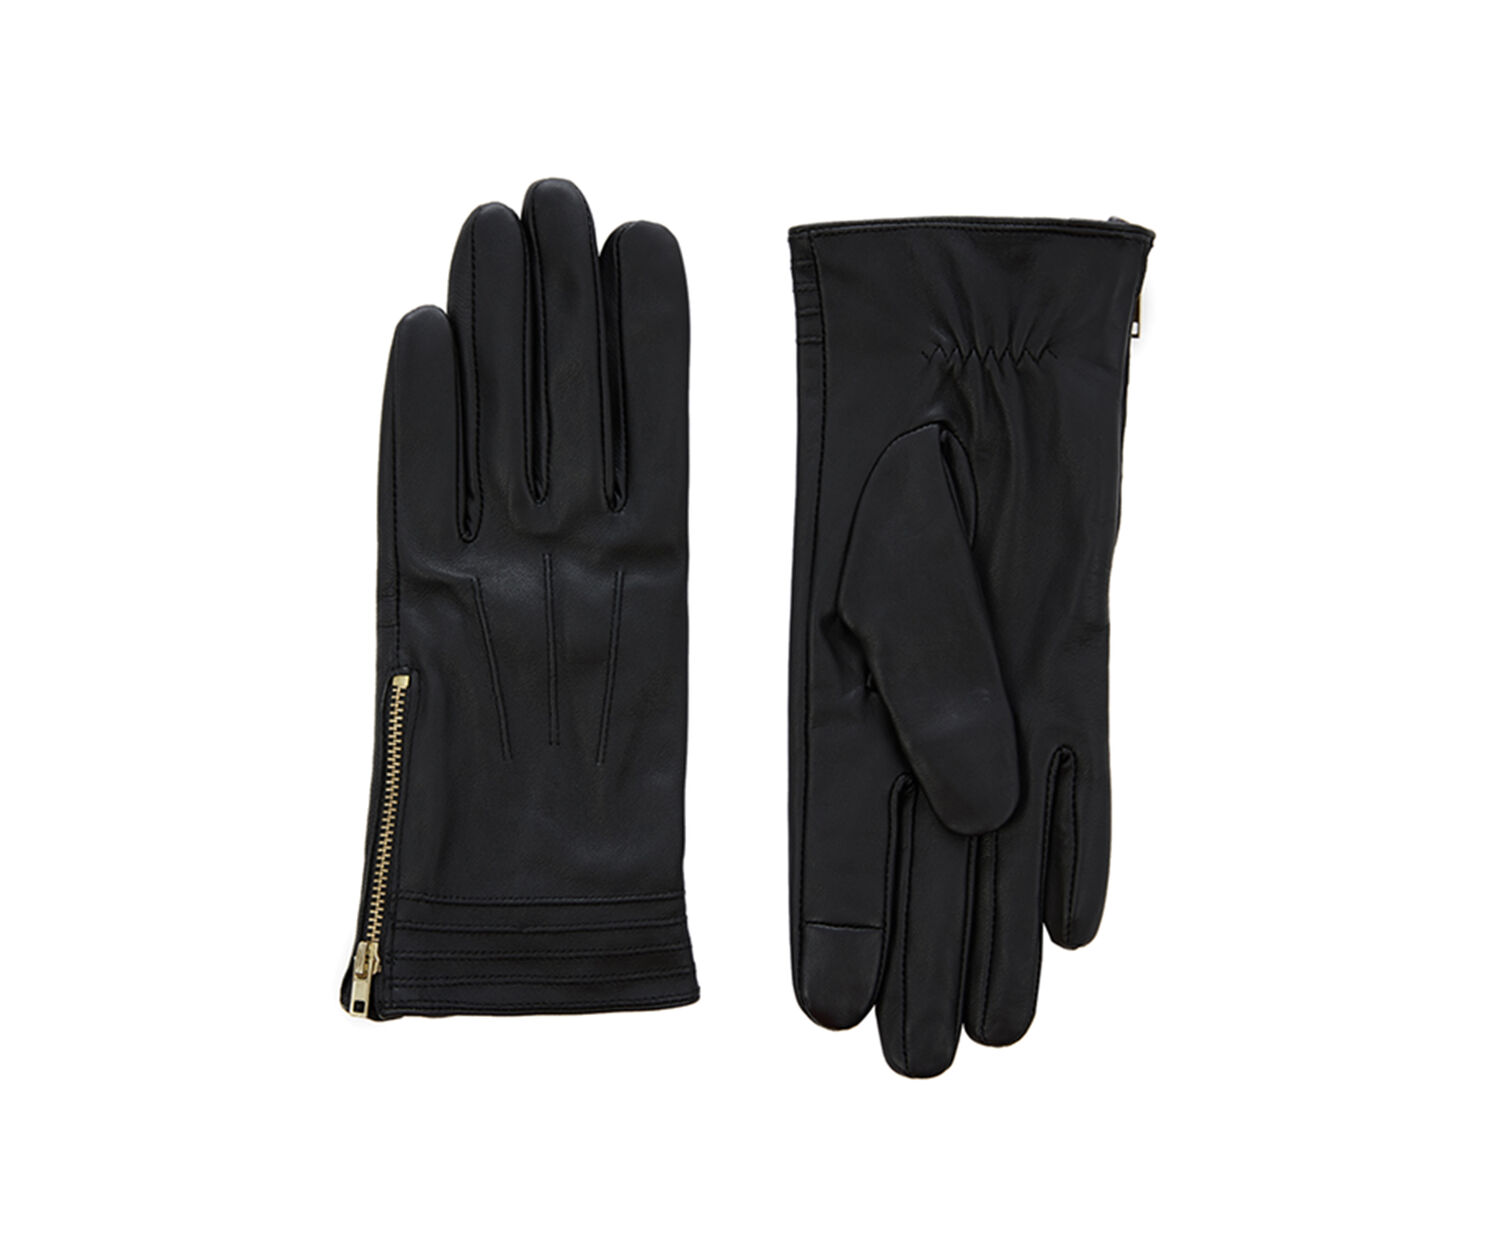 Oasis, LEATHER SIDE ZIP GLOVE Black 1